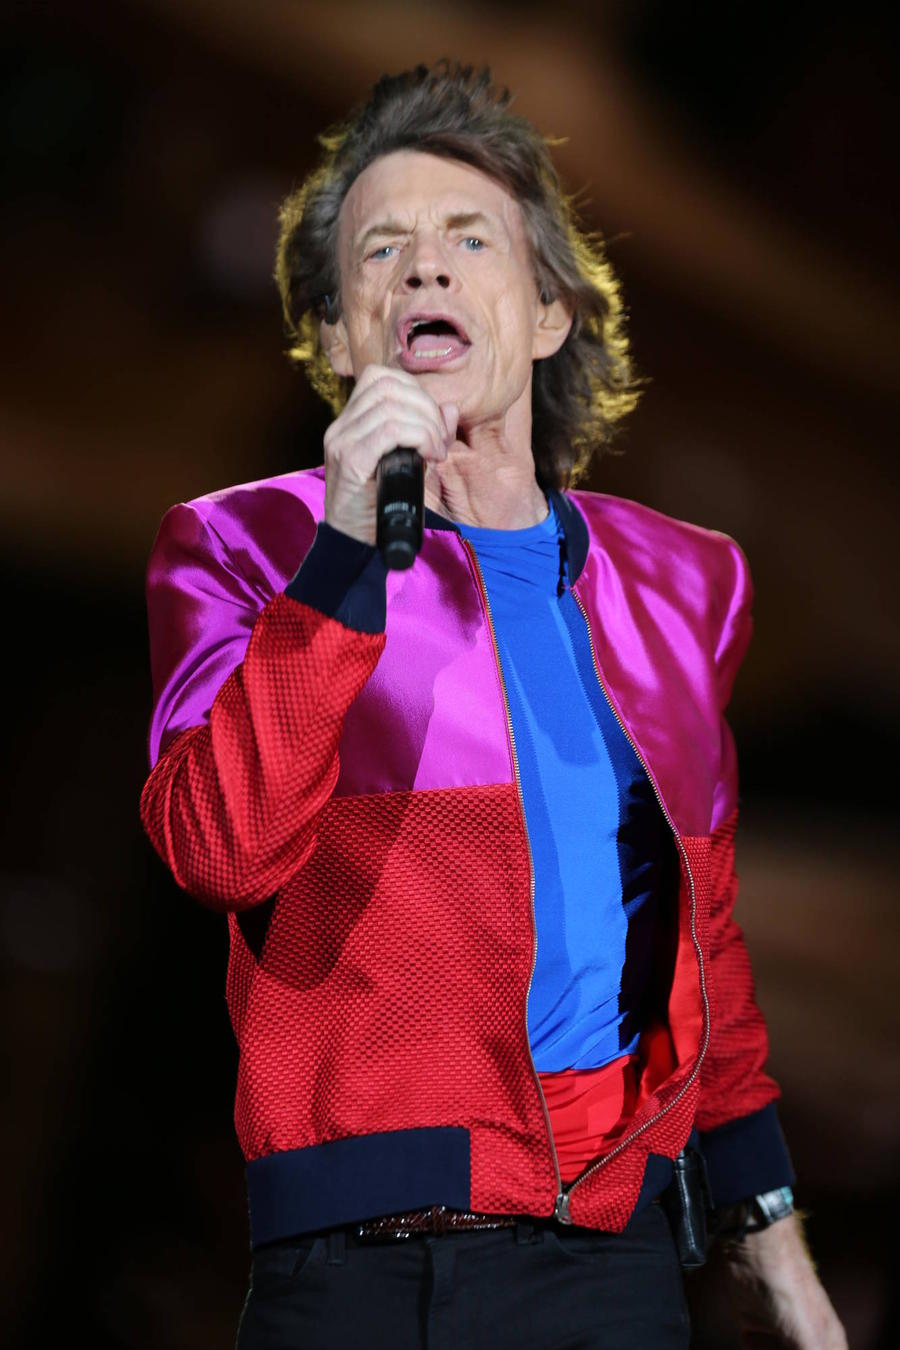 Mick Jagger's Laryngitis Forces Rolling Stones To Cancel Concert